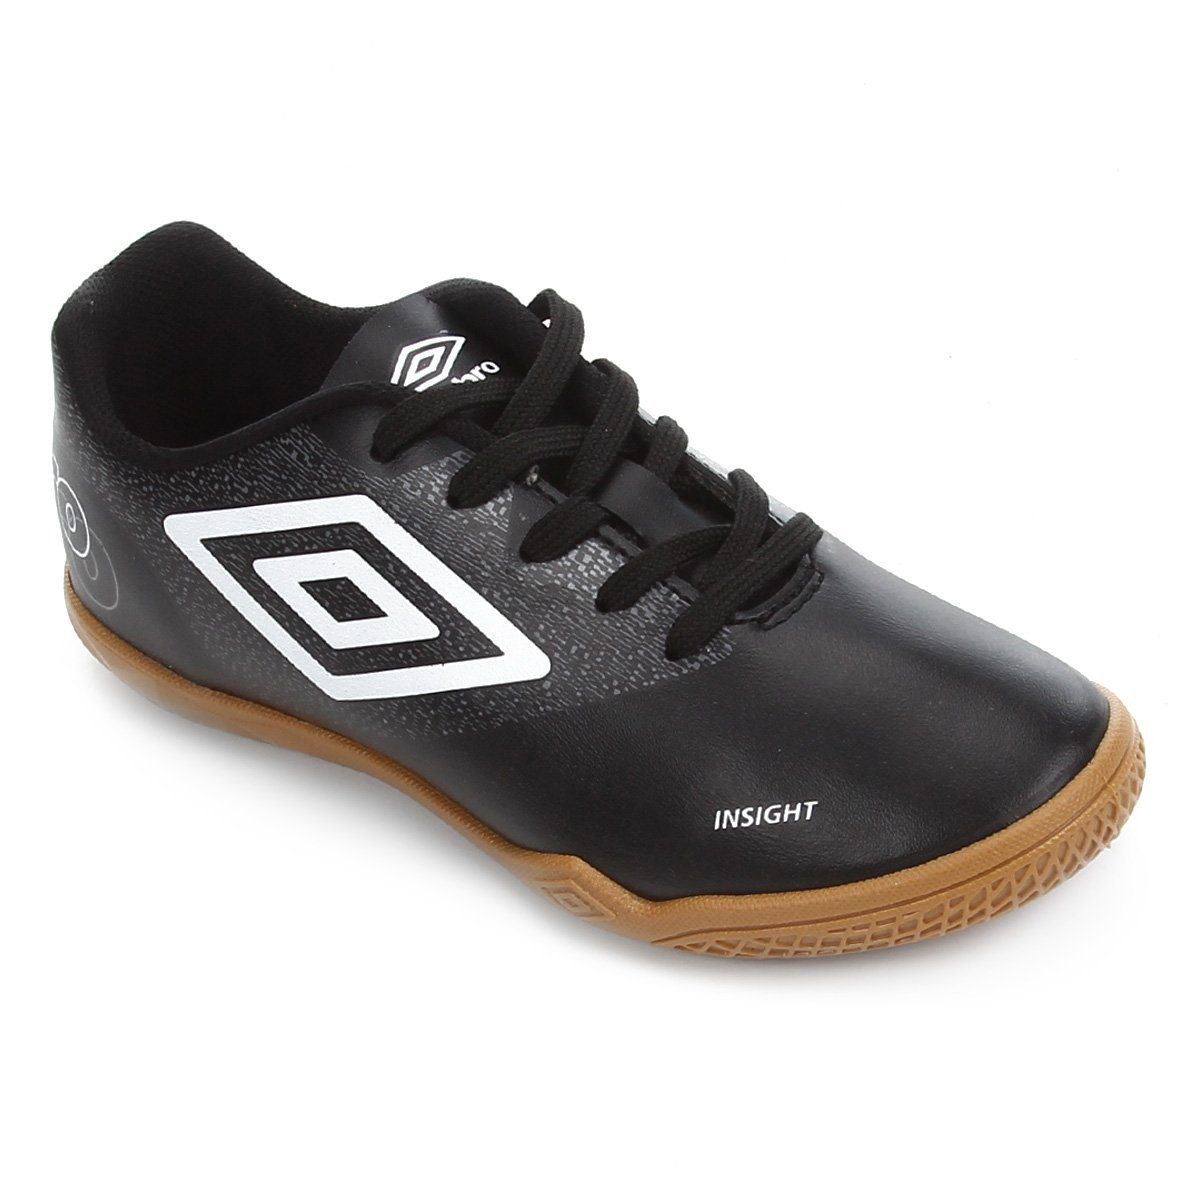 Chuteira Indoor Umbro Insight  Jr - Preto/Branco